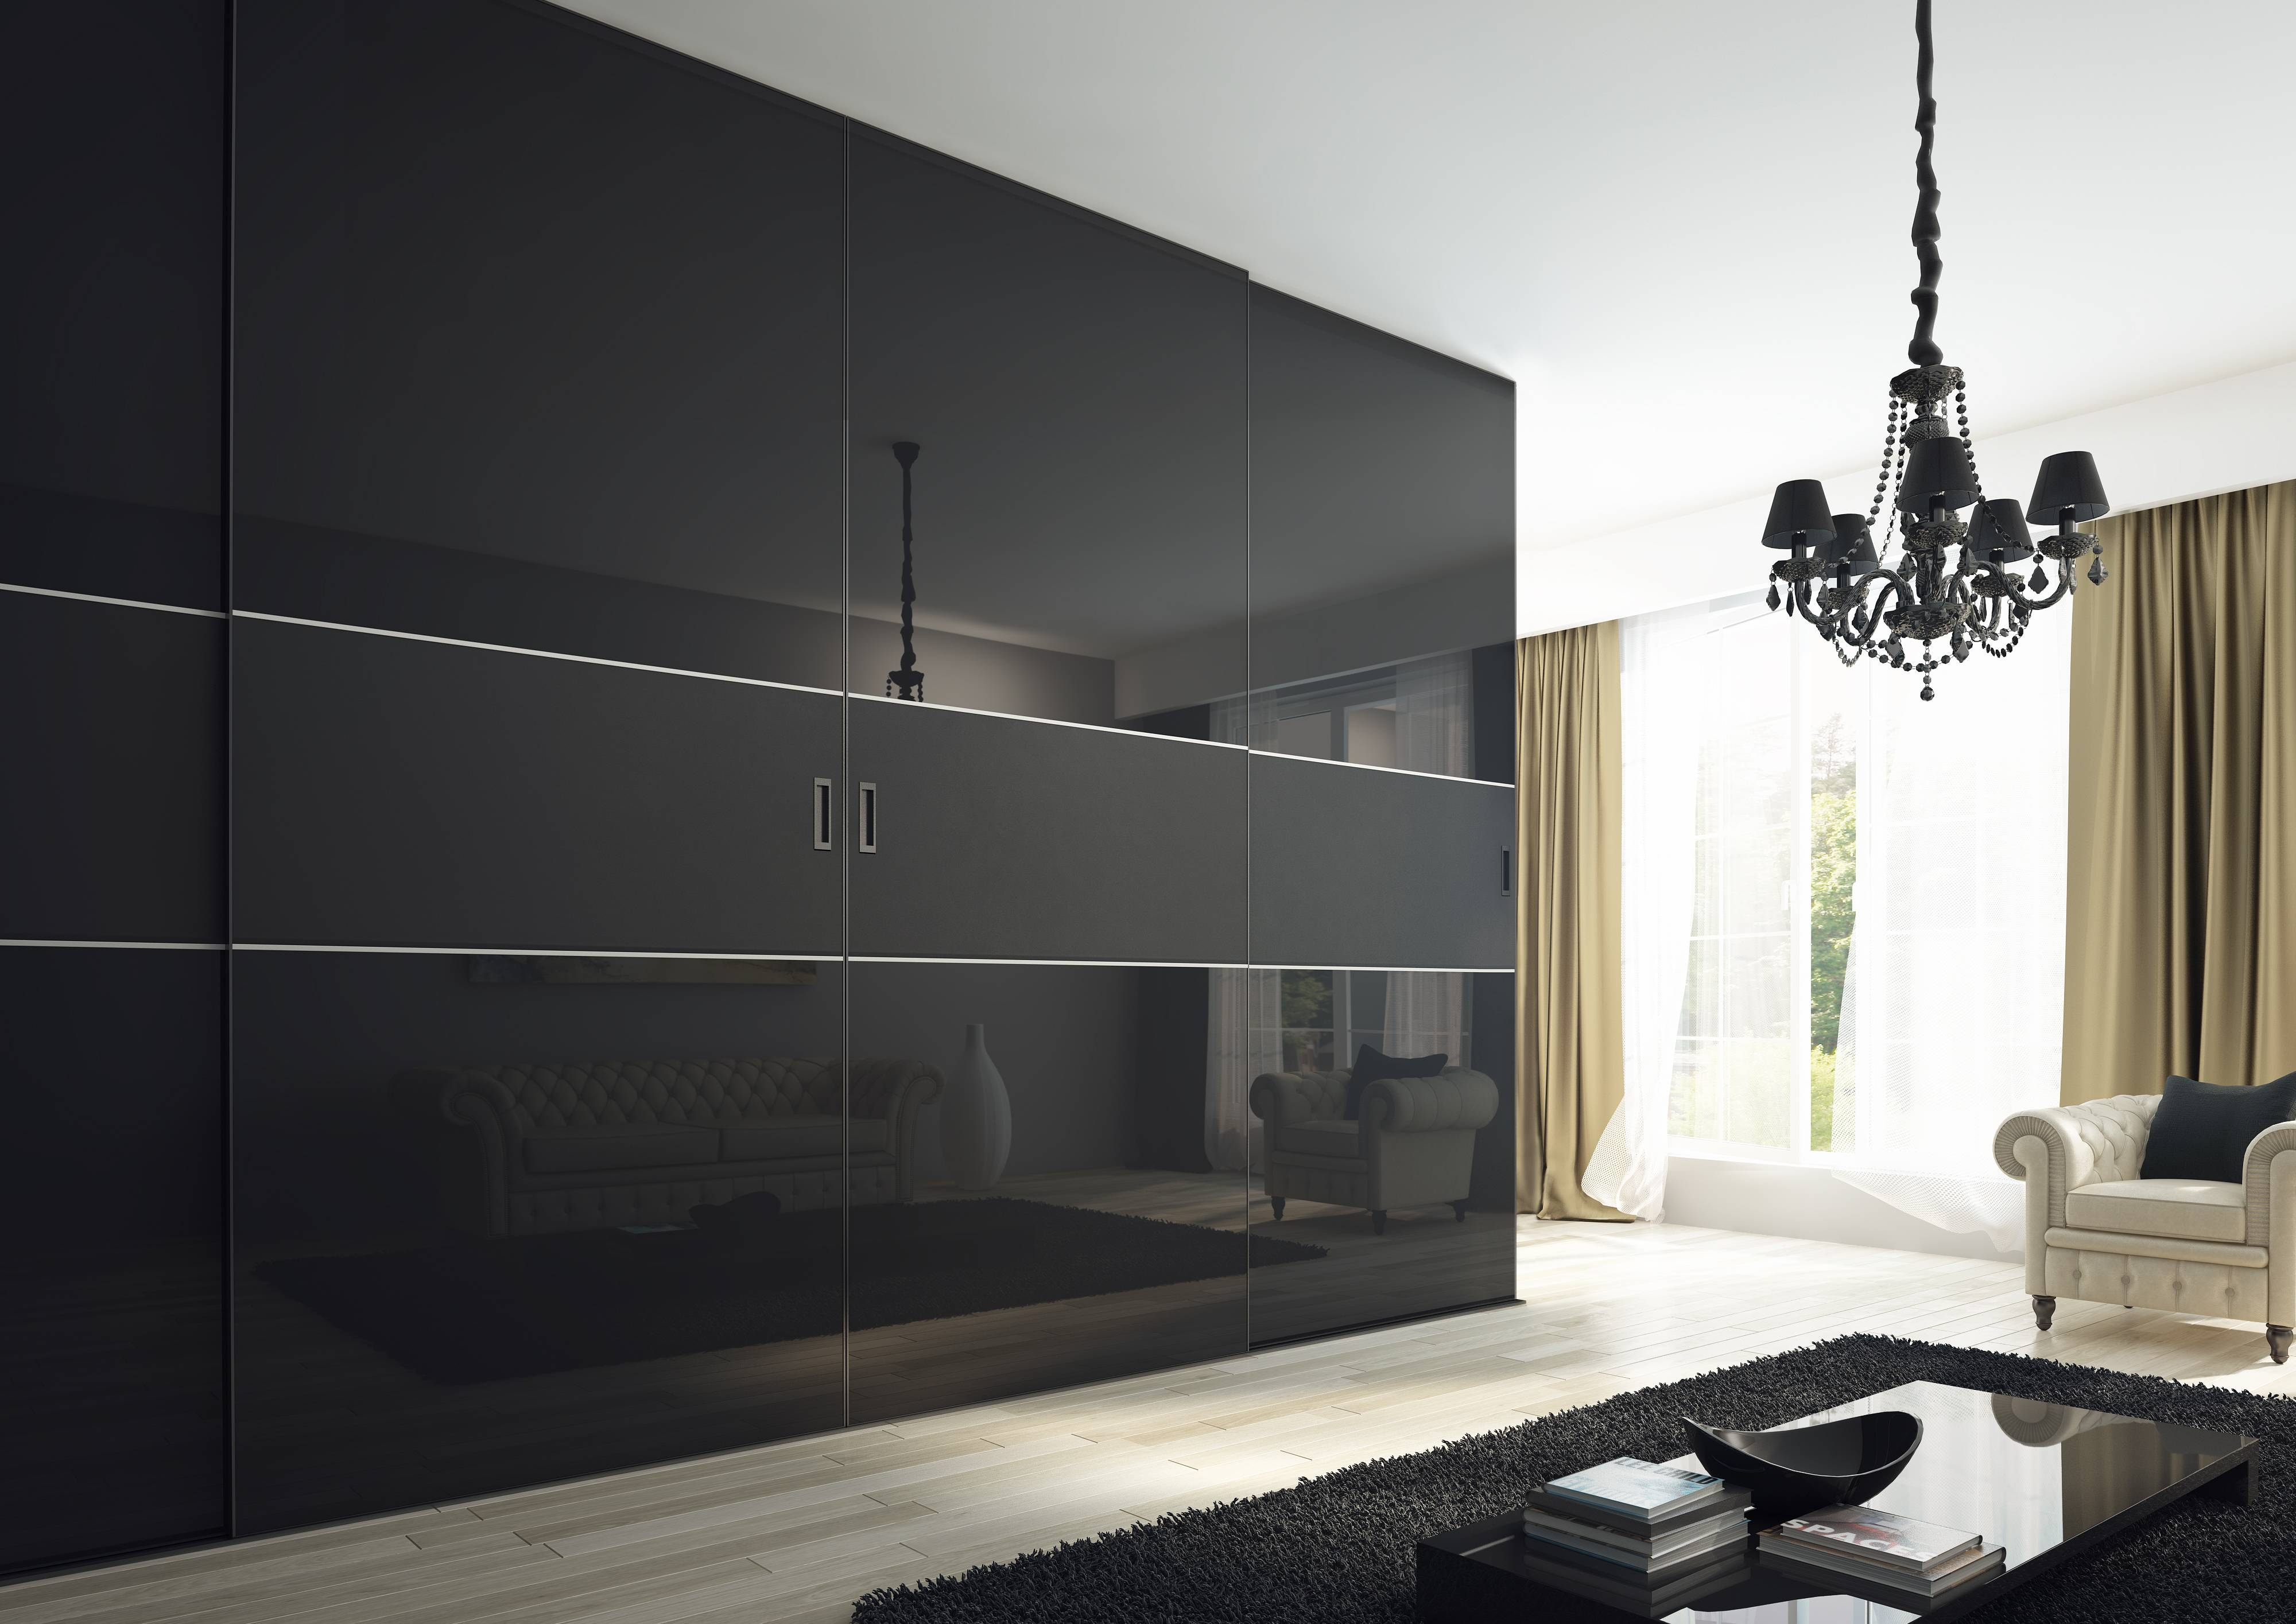 Kleiderhaus Sliding Doors And Fitted Wardrobes London Within 3 Door Black Gloss Wardrobes (View 4 of 15)